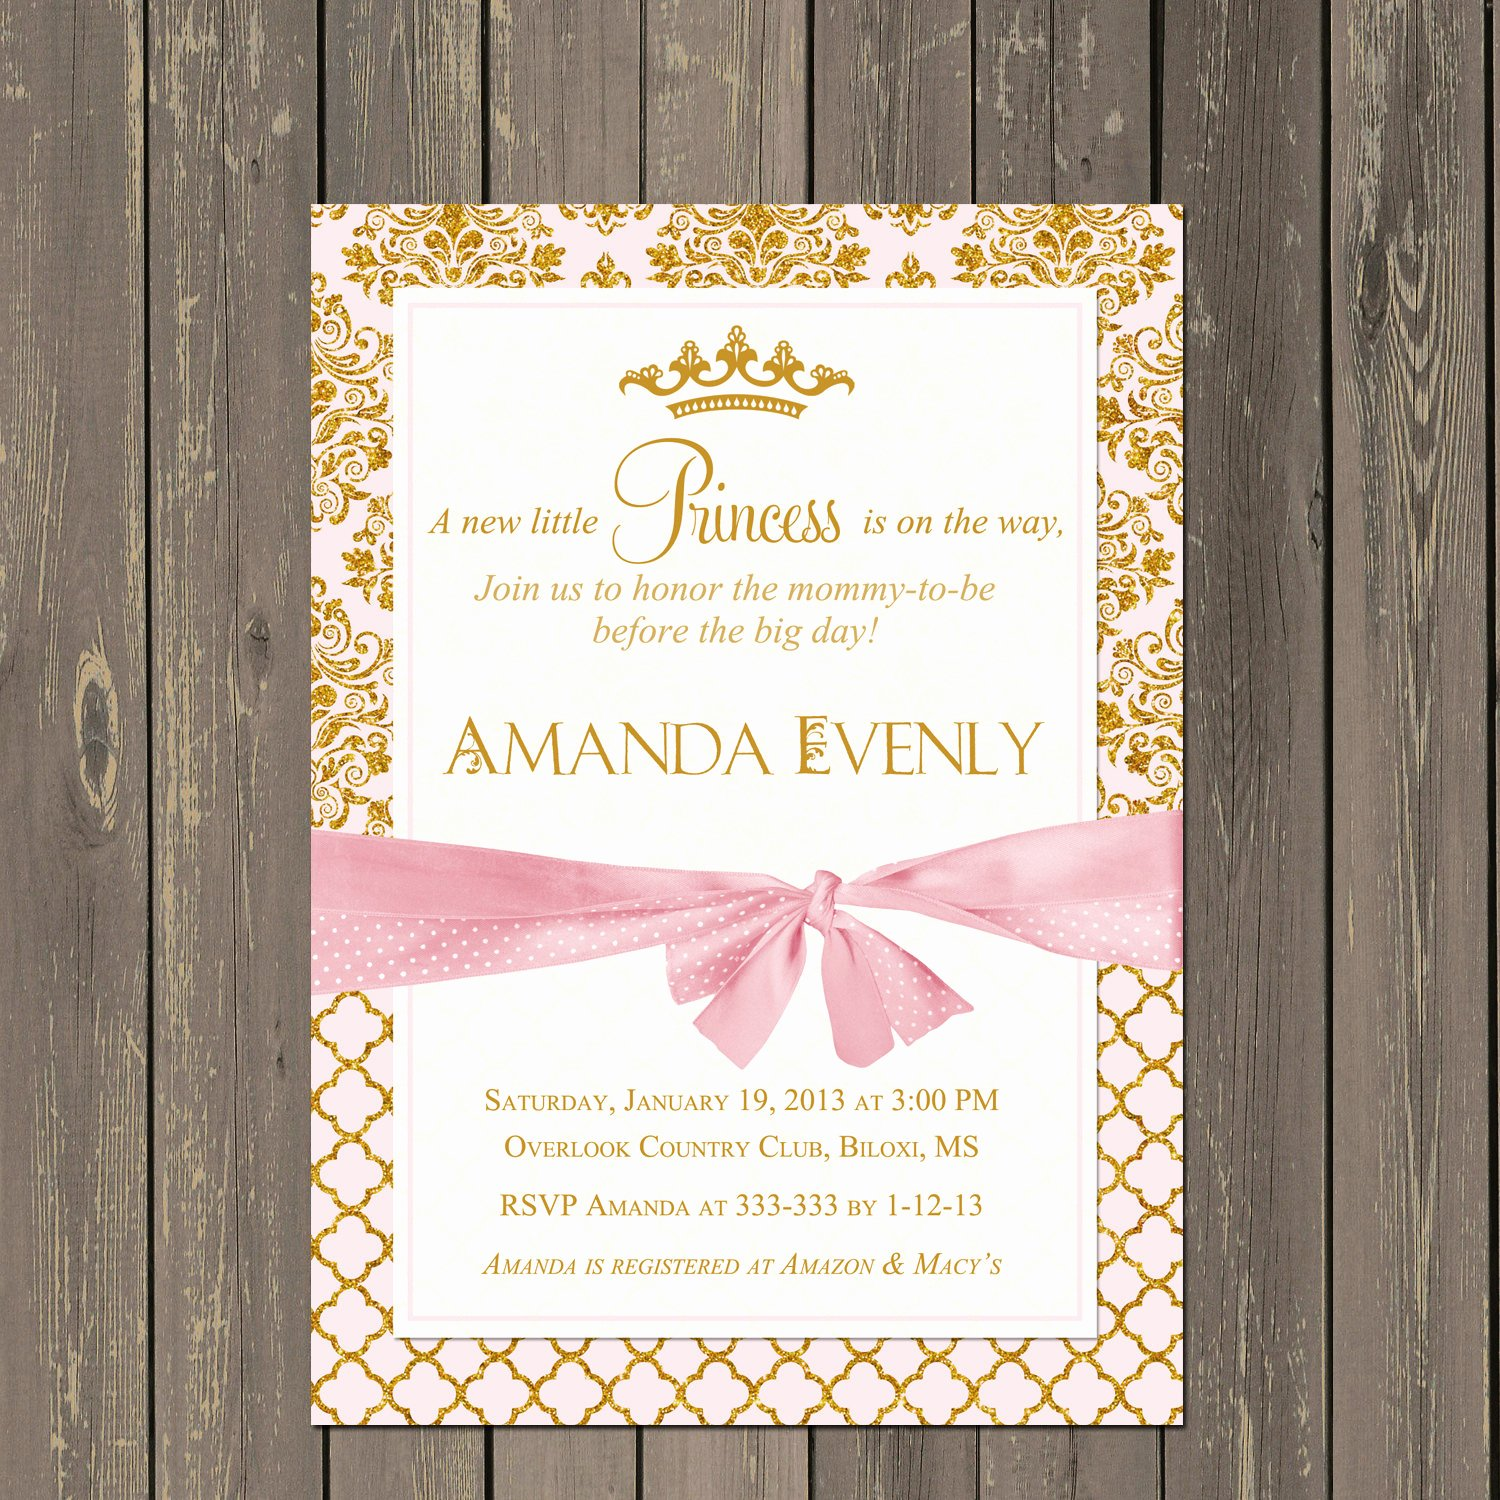 Princess Baby Shower Invitations Unique Princess Baby Shower Invitation Pink and Gold Princess Shower